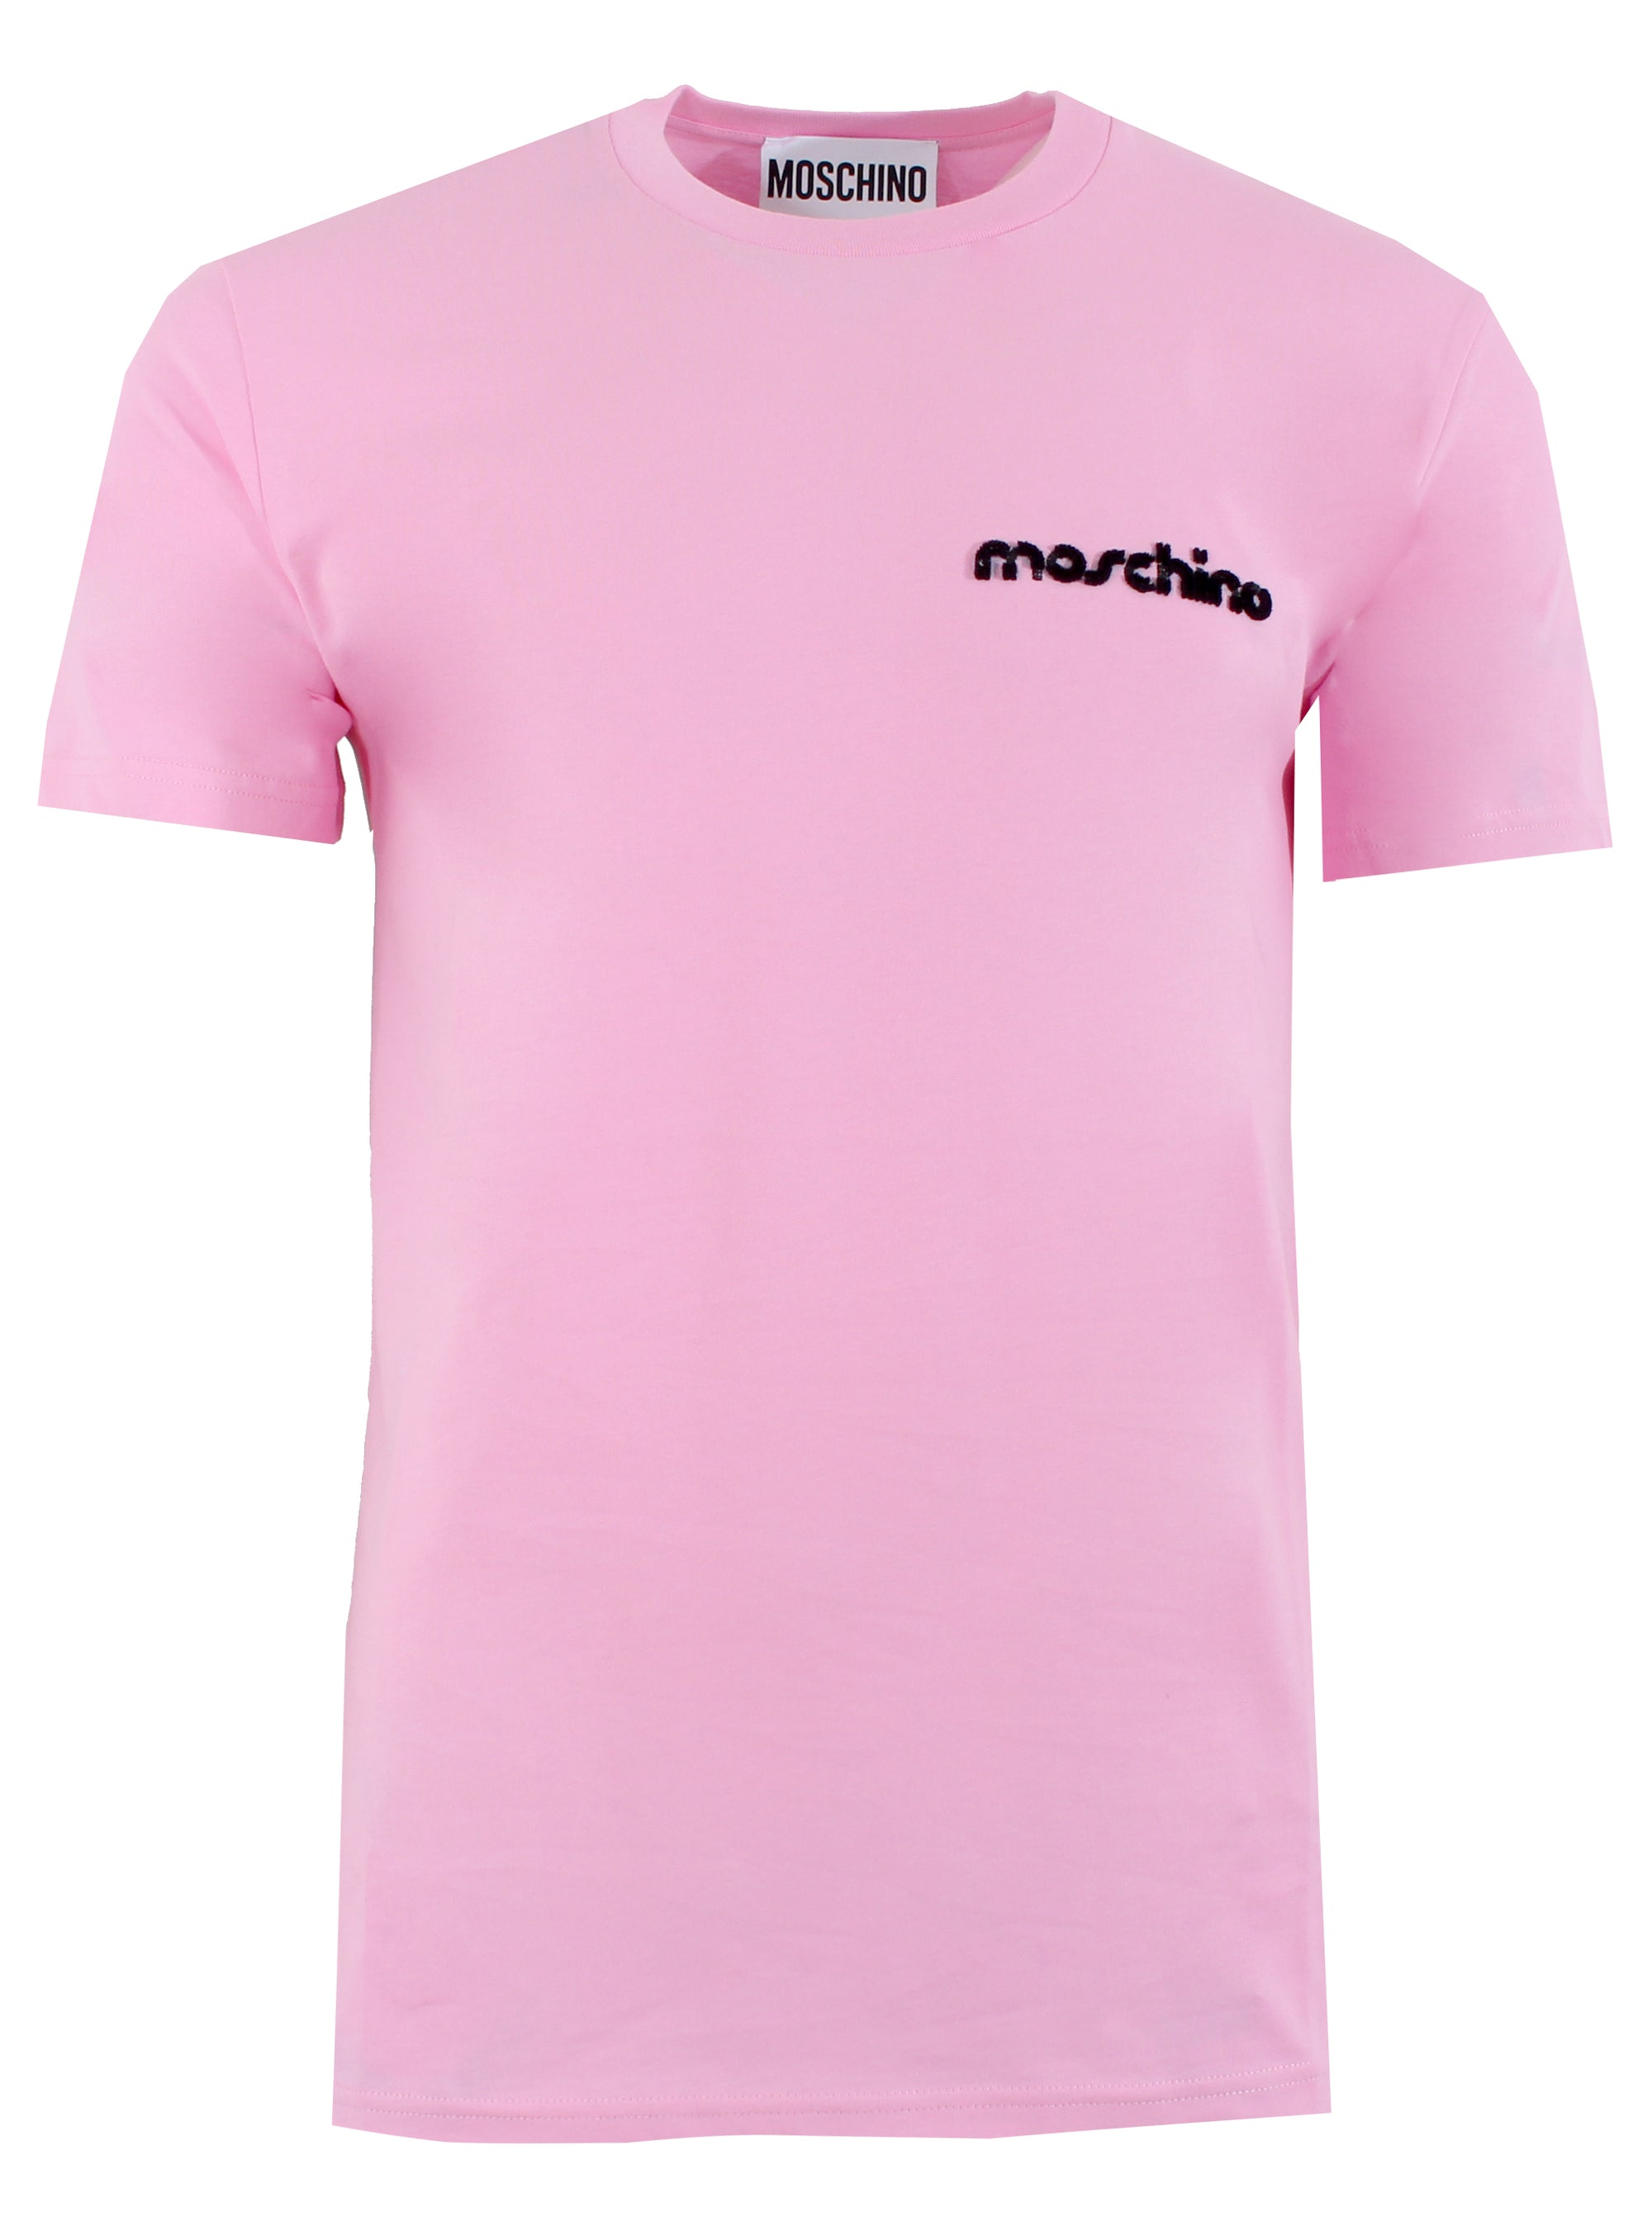 Moschino Logo Embroidered Short Sleeve Tee